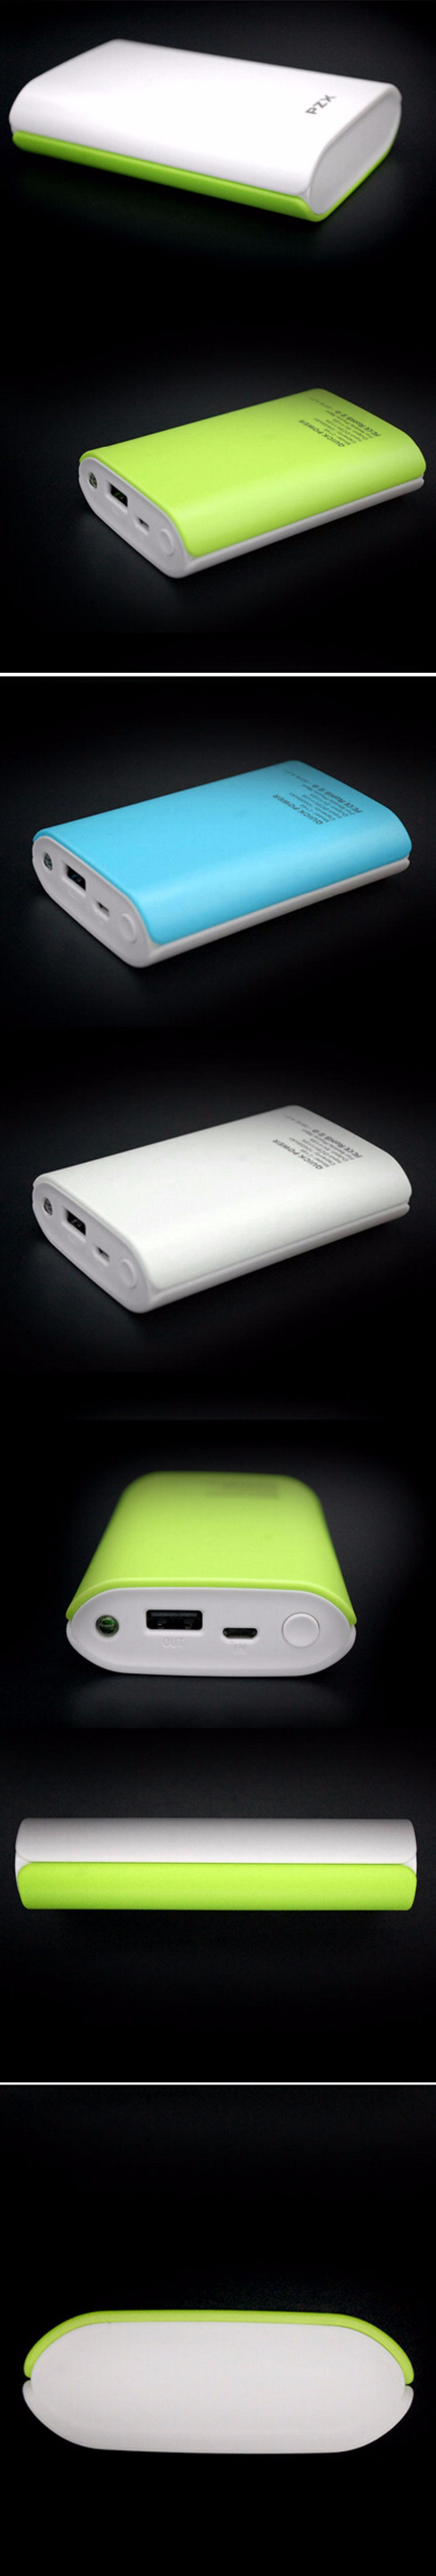 Power bank 10400mah Portable Charger battery charger battery back for mobile phone